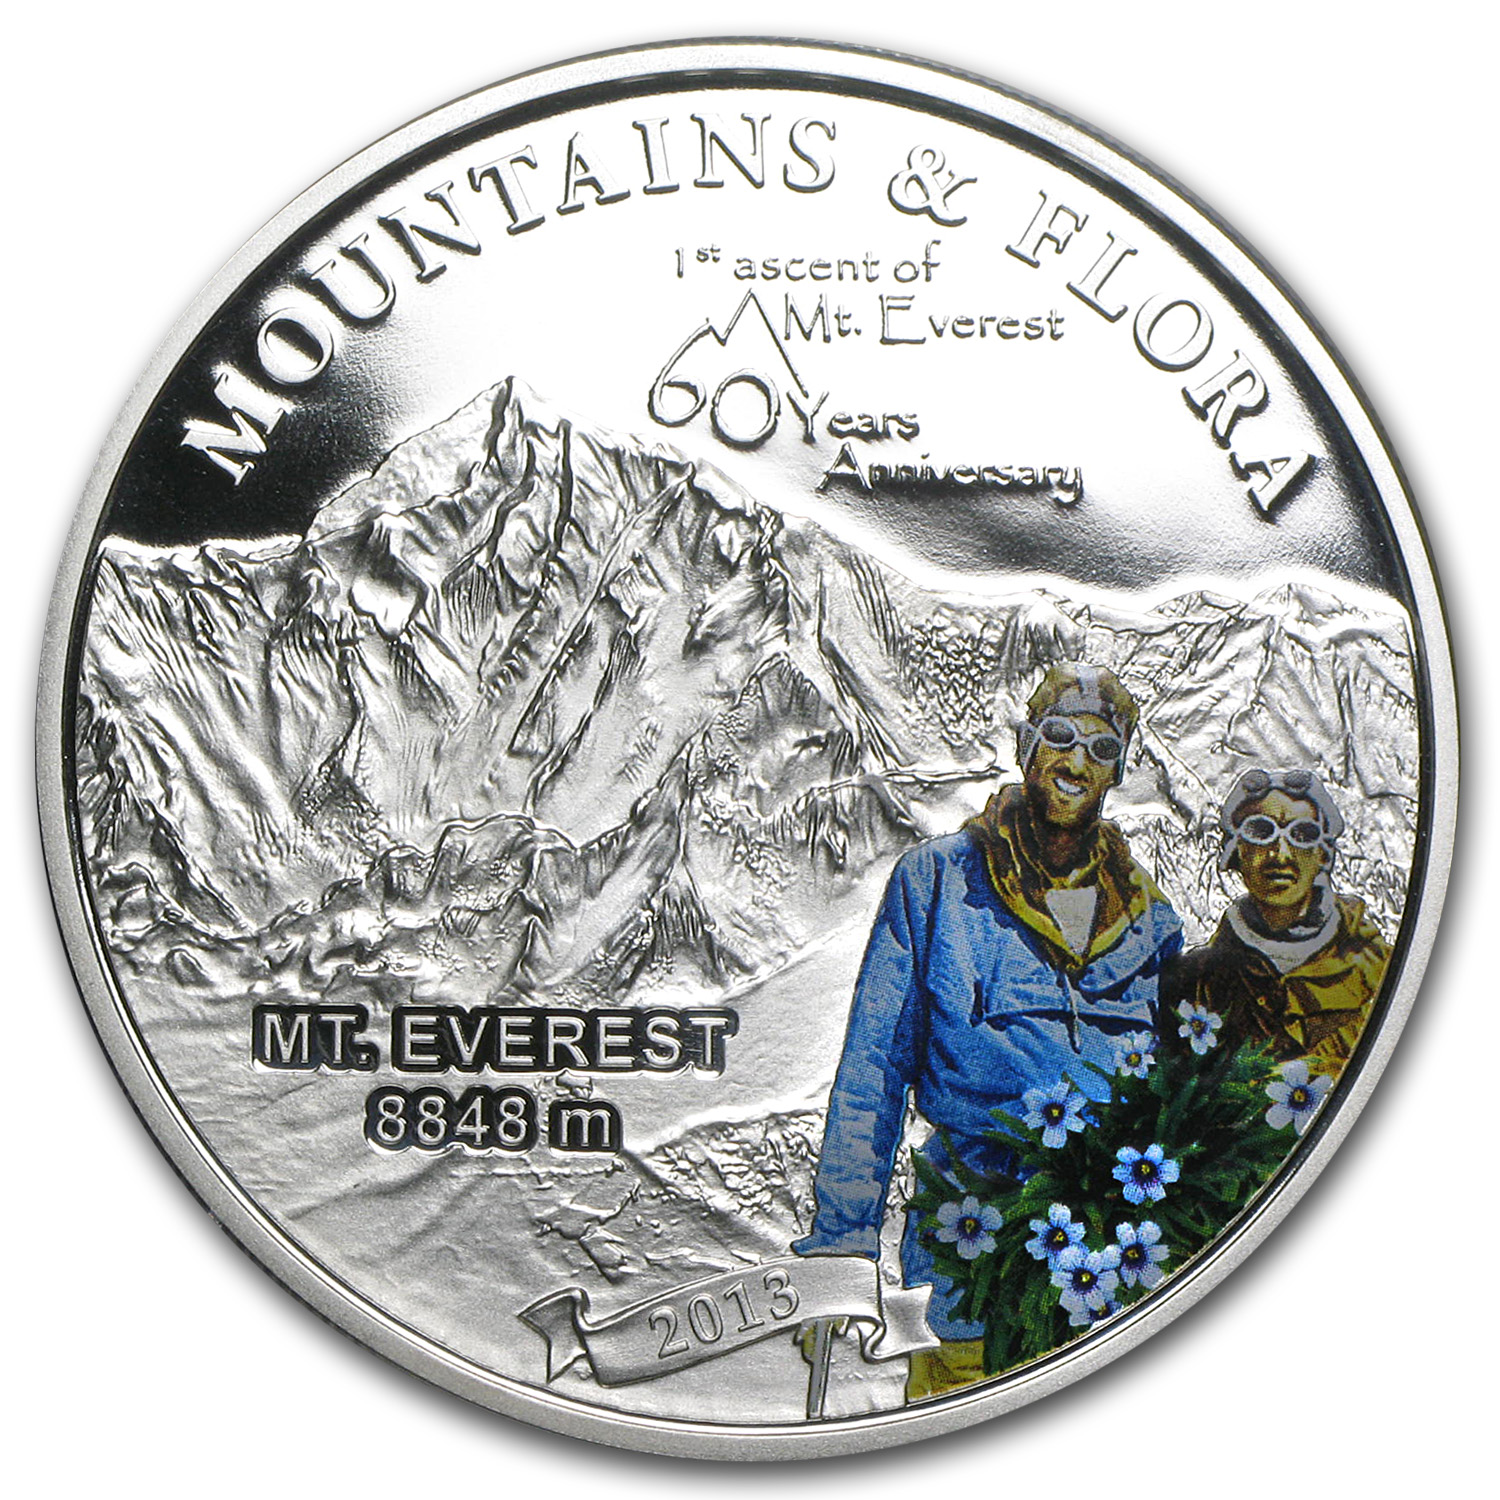 2013 Palau Proof Silver 60th Anniv of 1st Ascent Mount Everest